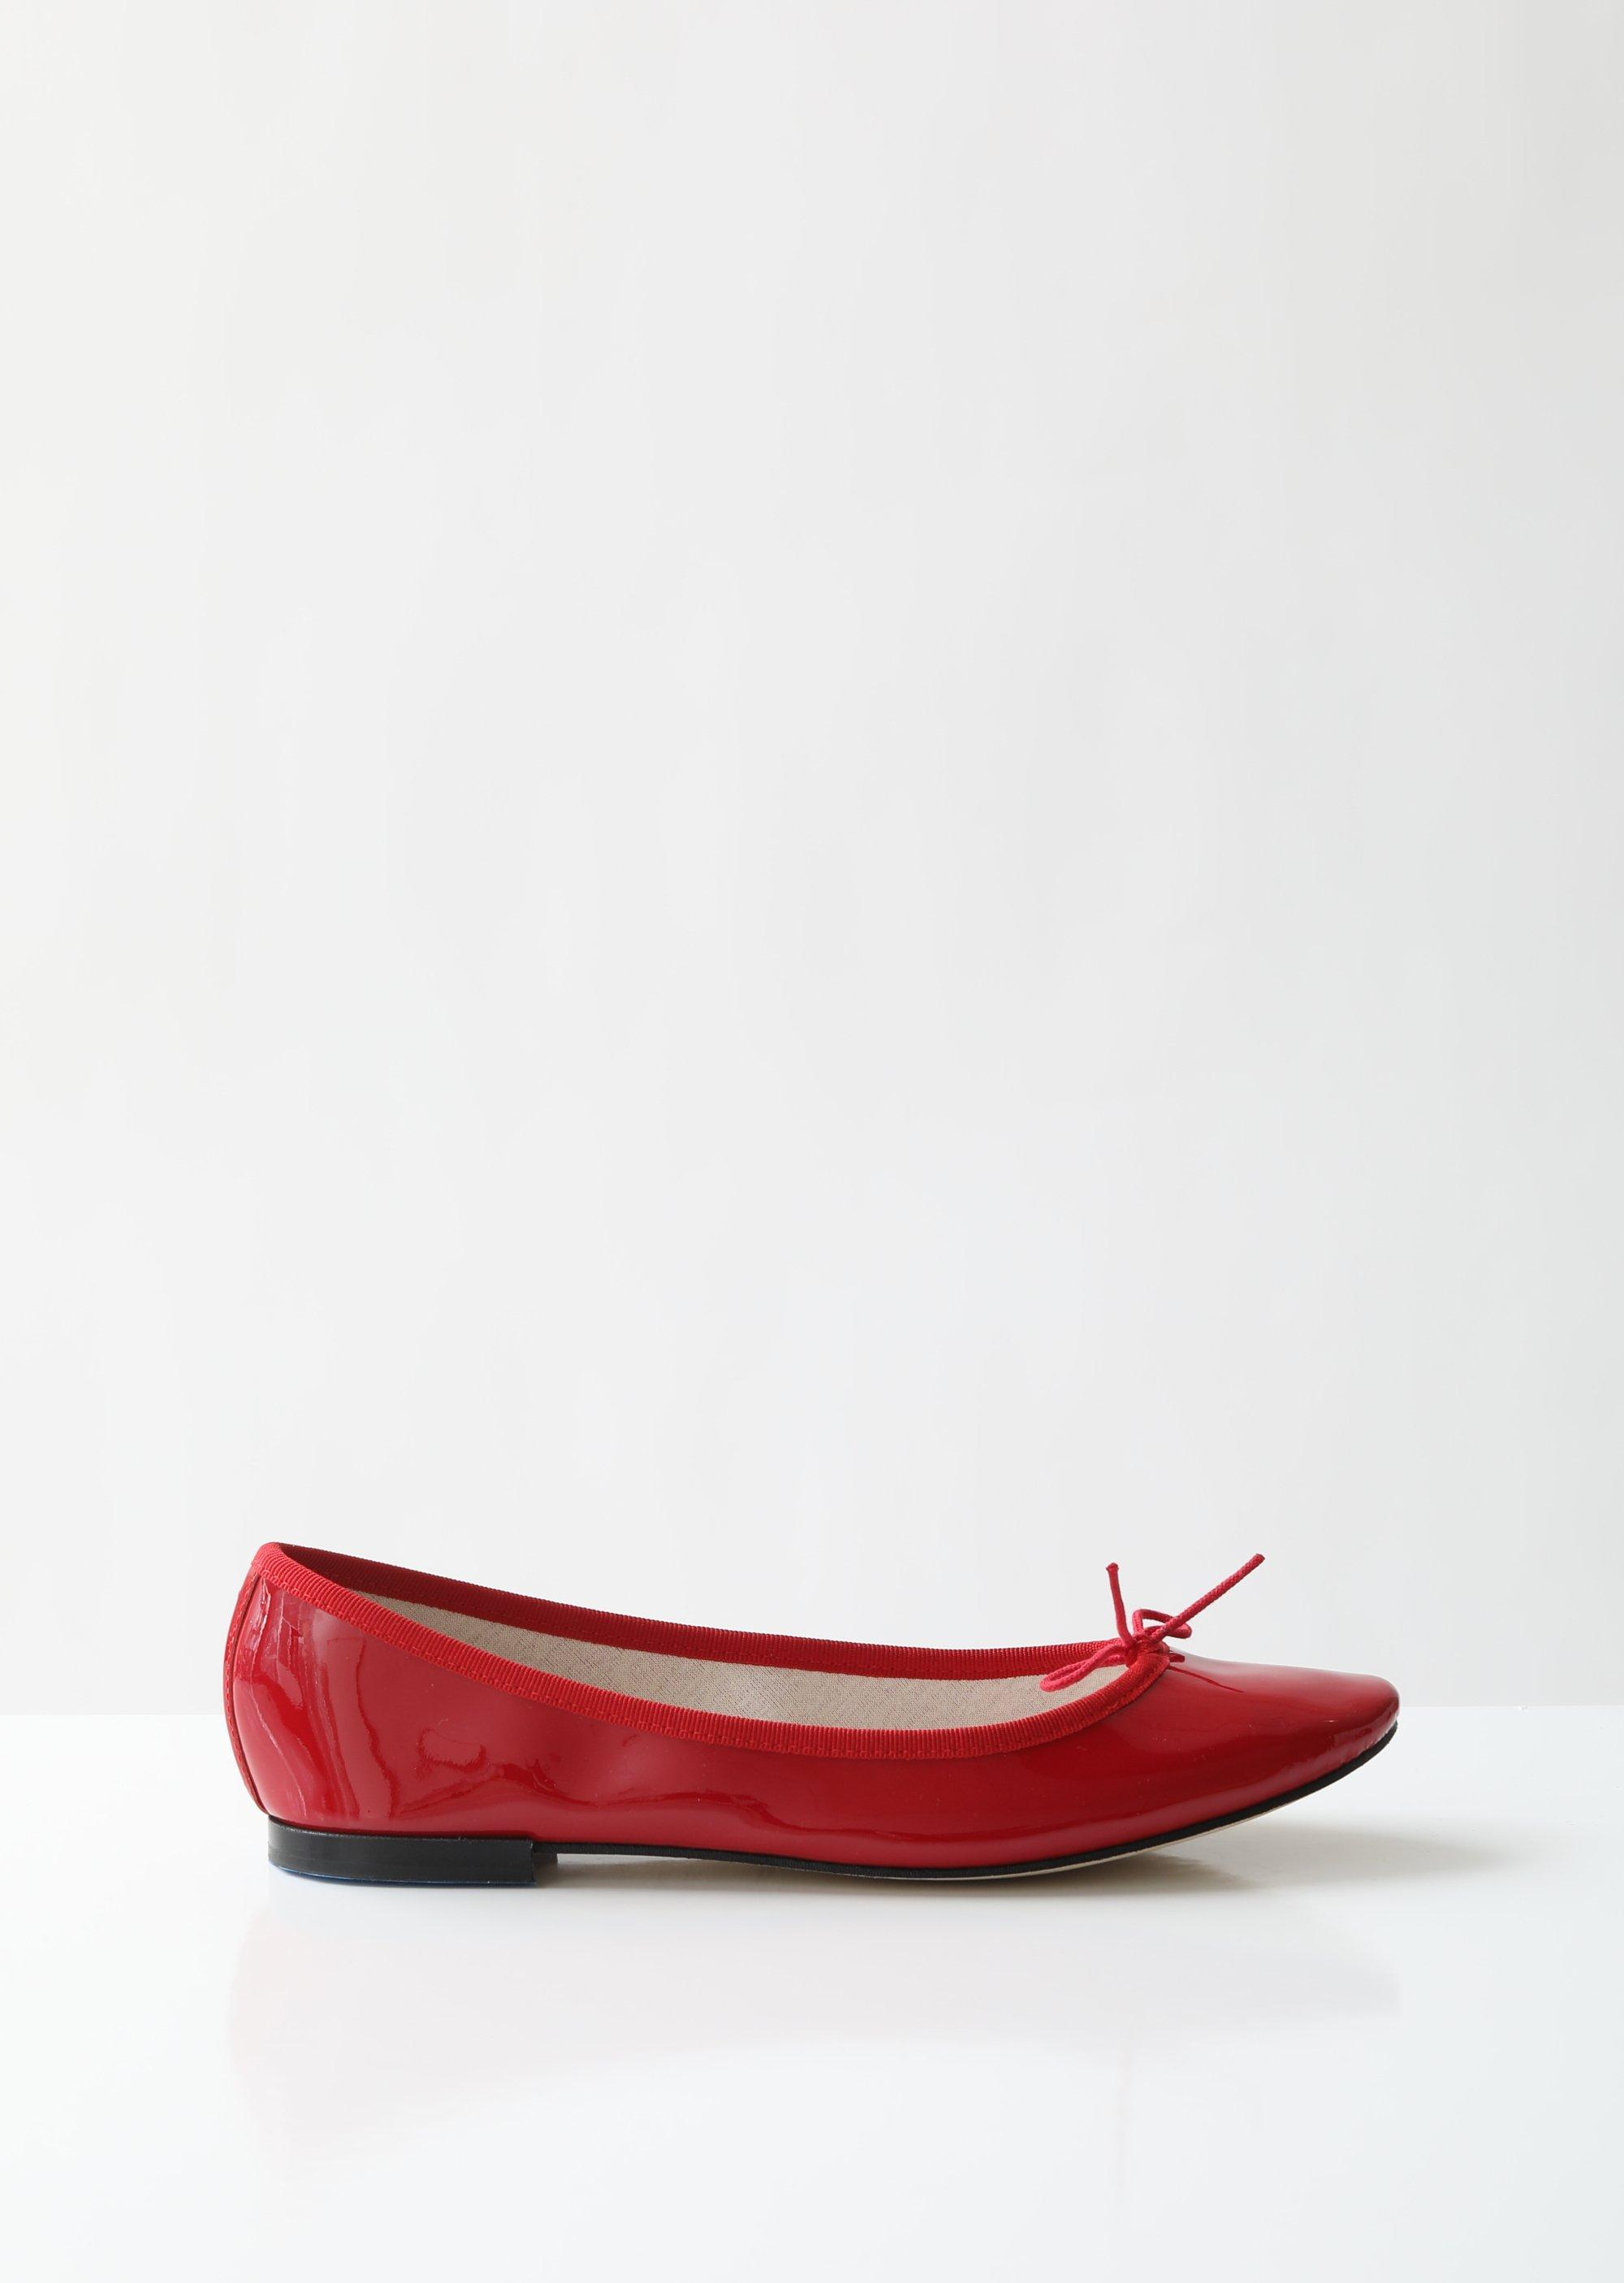 7e50064e763e0 Repetto Cendrillon Ballerina Flats in Red - Lyst